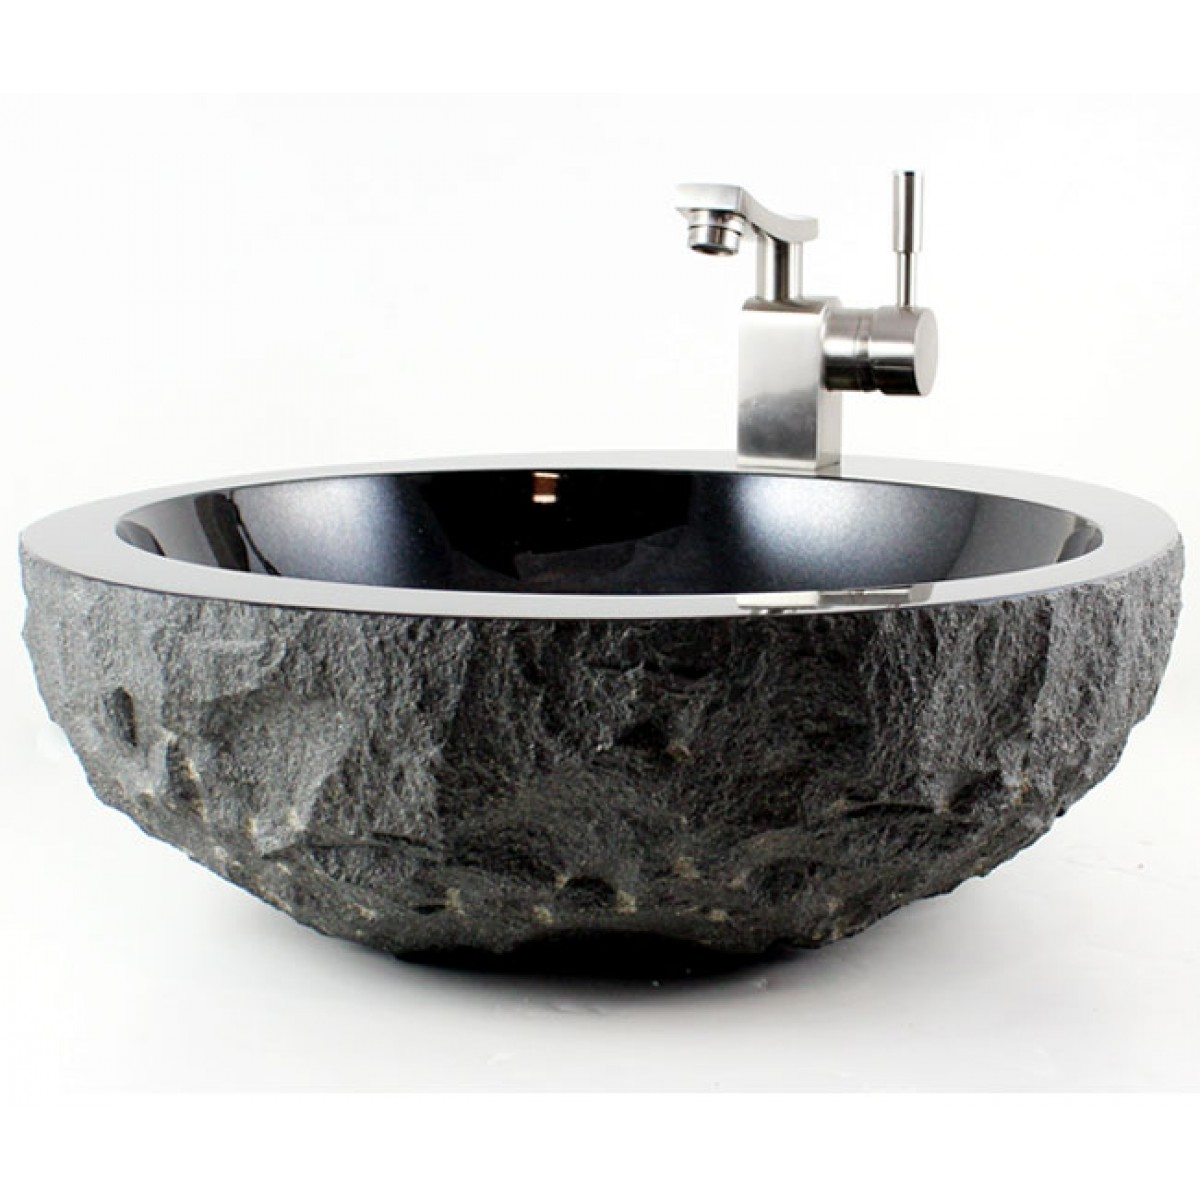 Black Bathroom Sink : Stone Absolute Black Granite Finish Bathroom Lavatory Vessel Sink ...